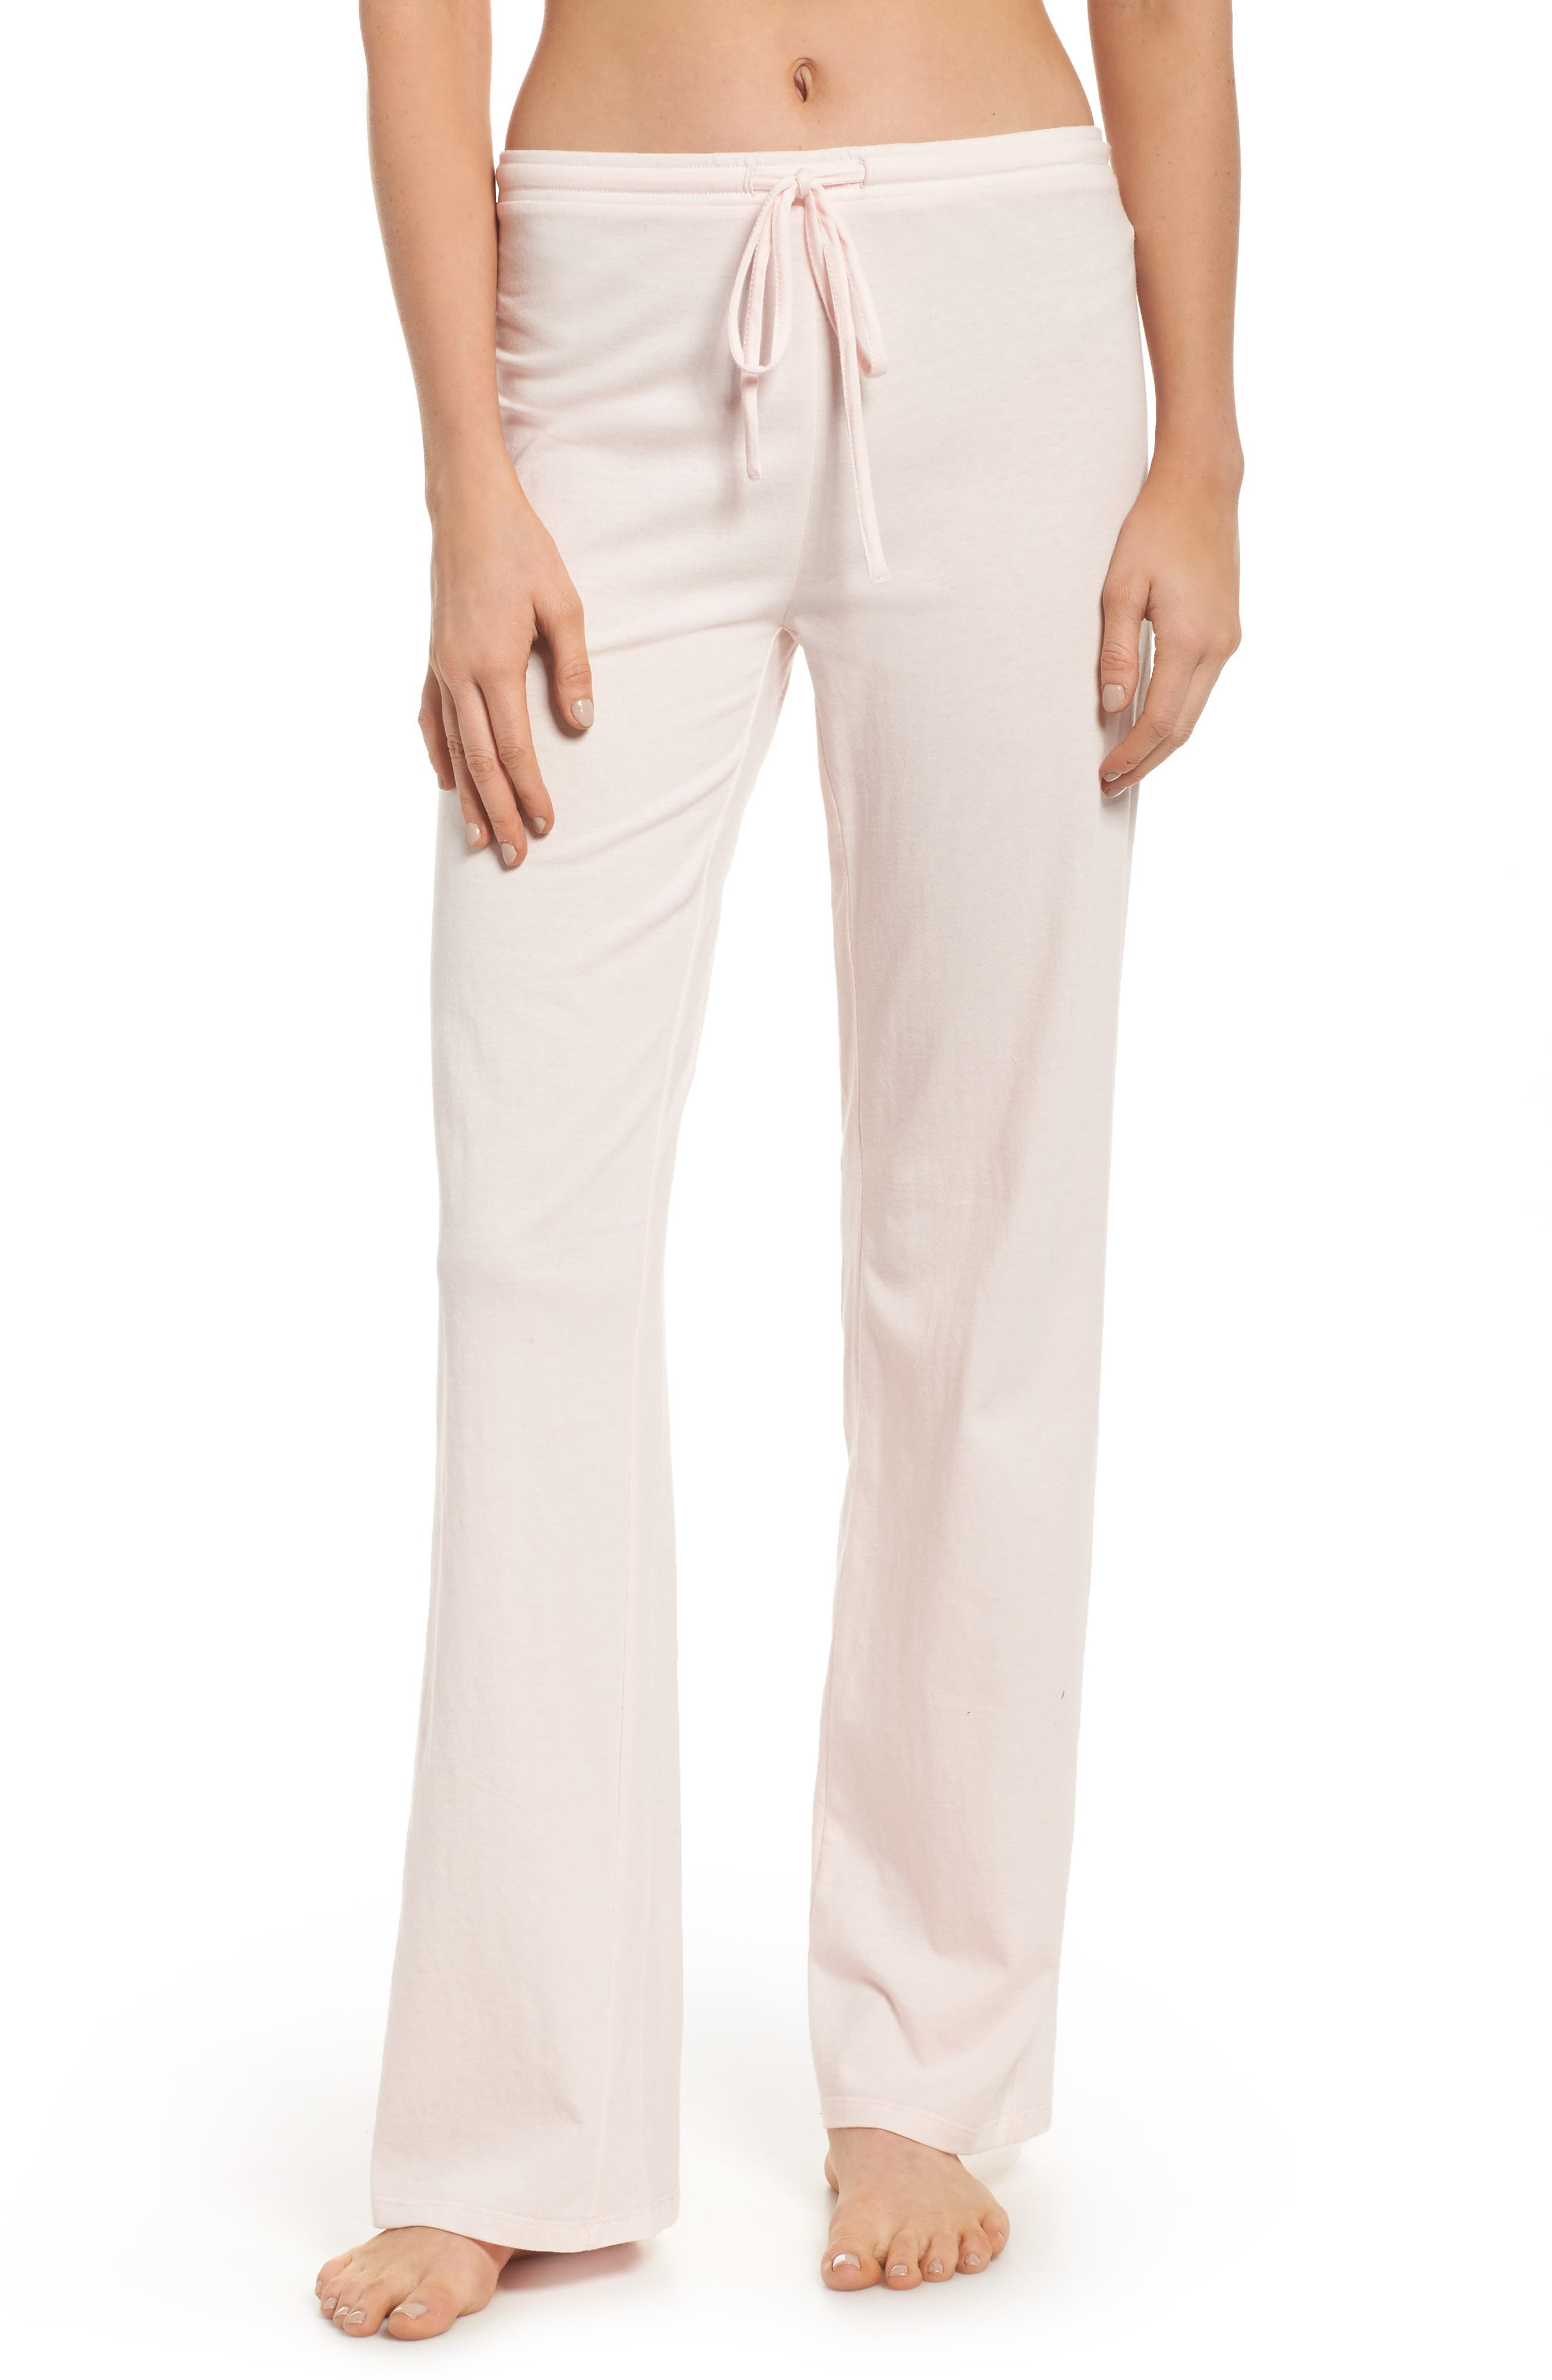 Breathe Lounge Pants,                         Main,                         color, Pink Frosty